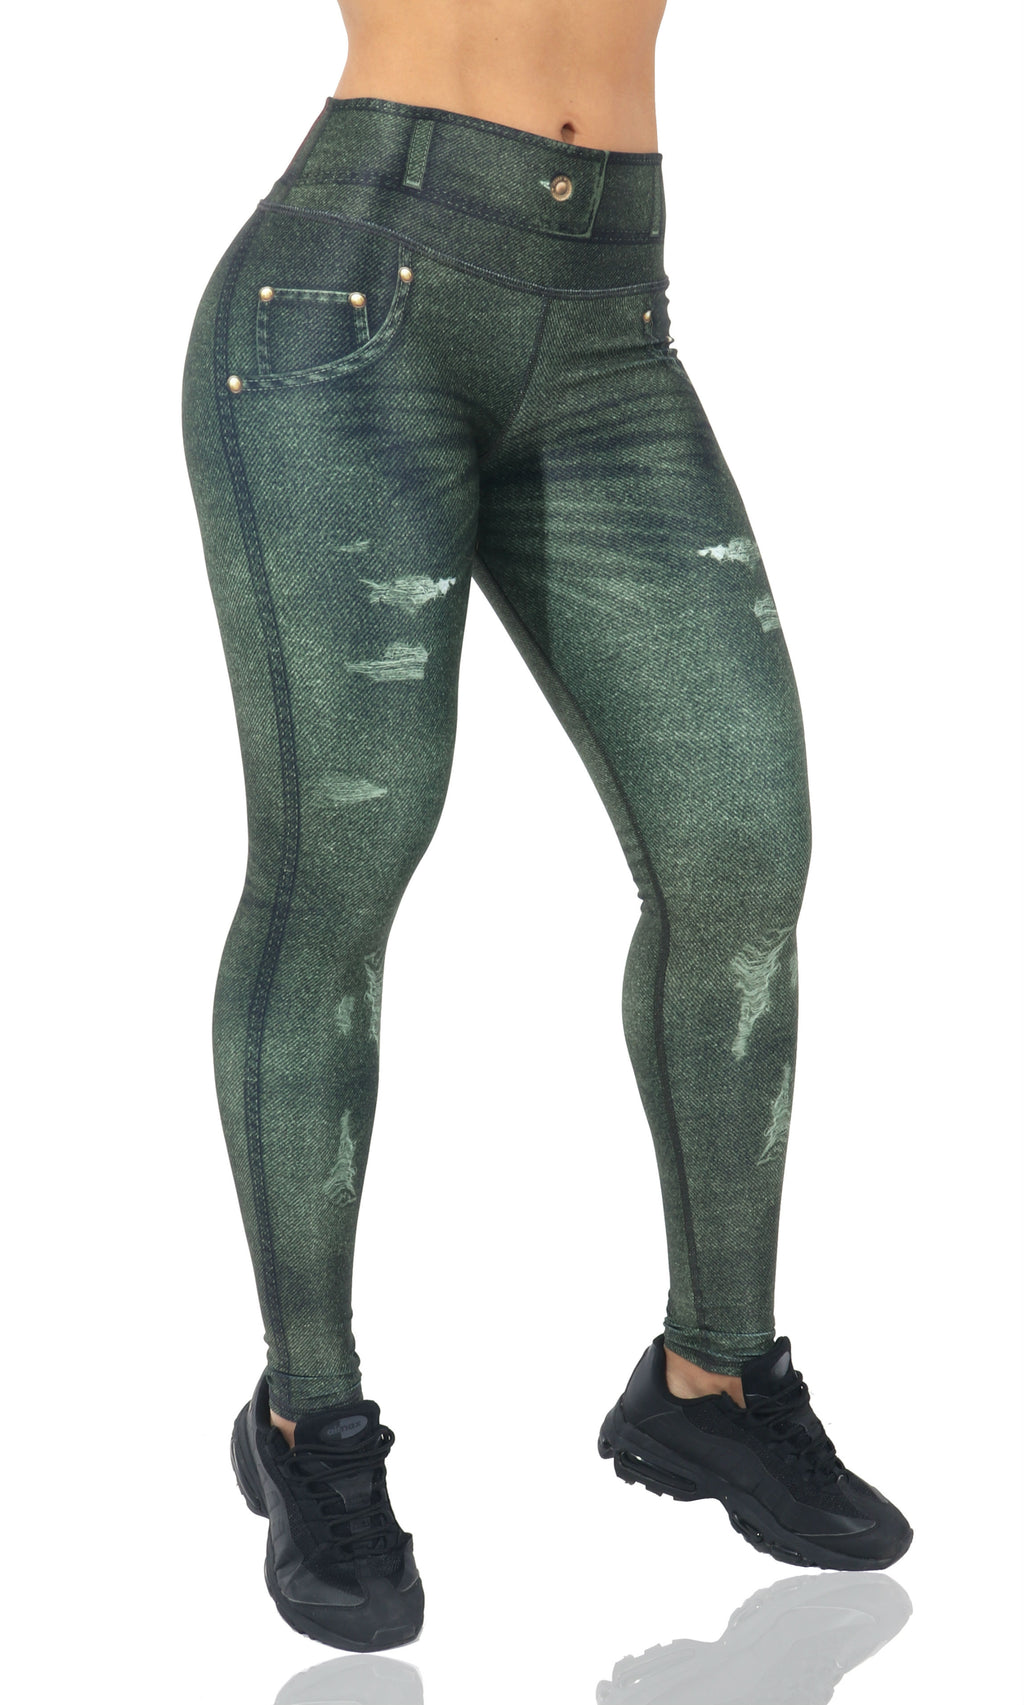 FP - Green Jean Leggings